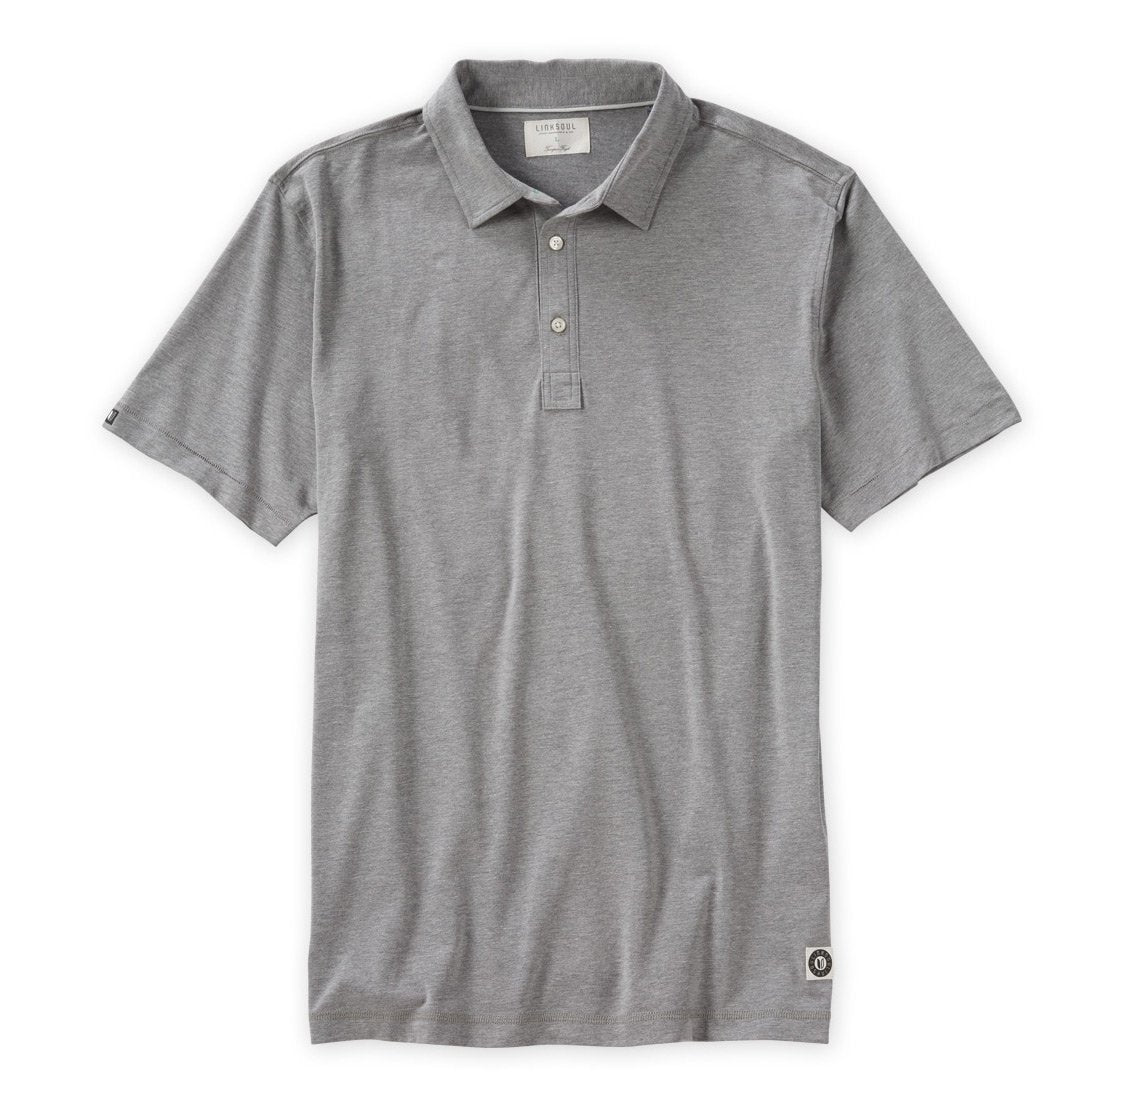 Anza Drytech Short Sleeve Knit Shirt